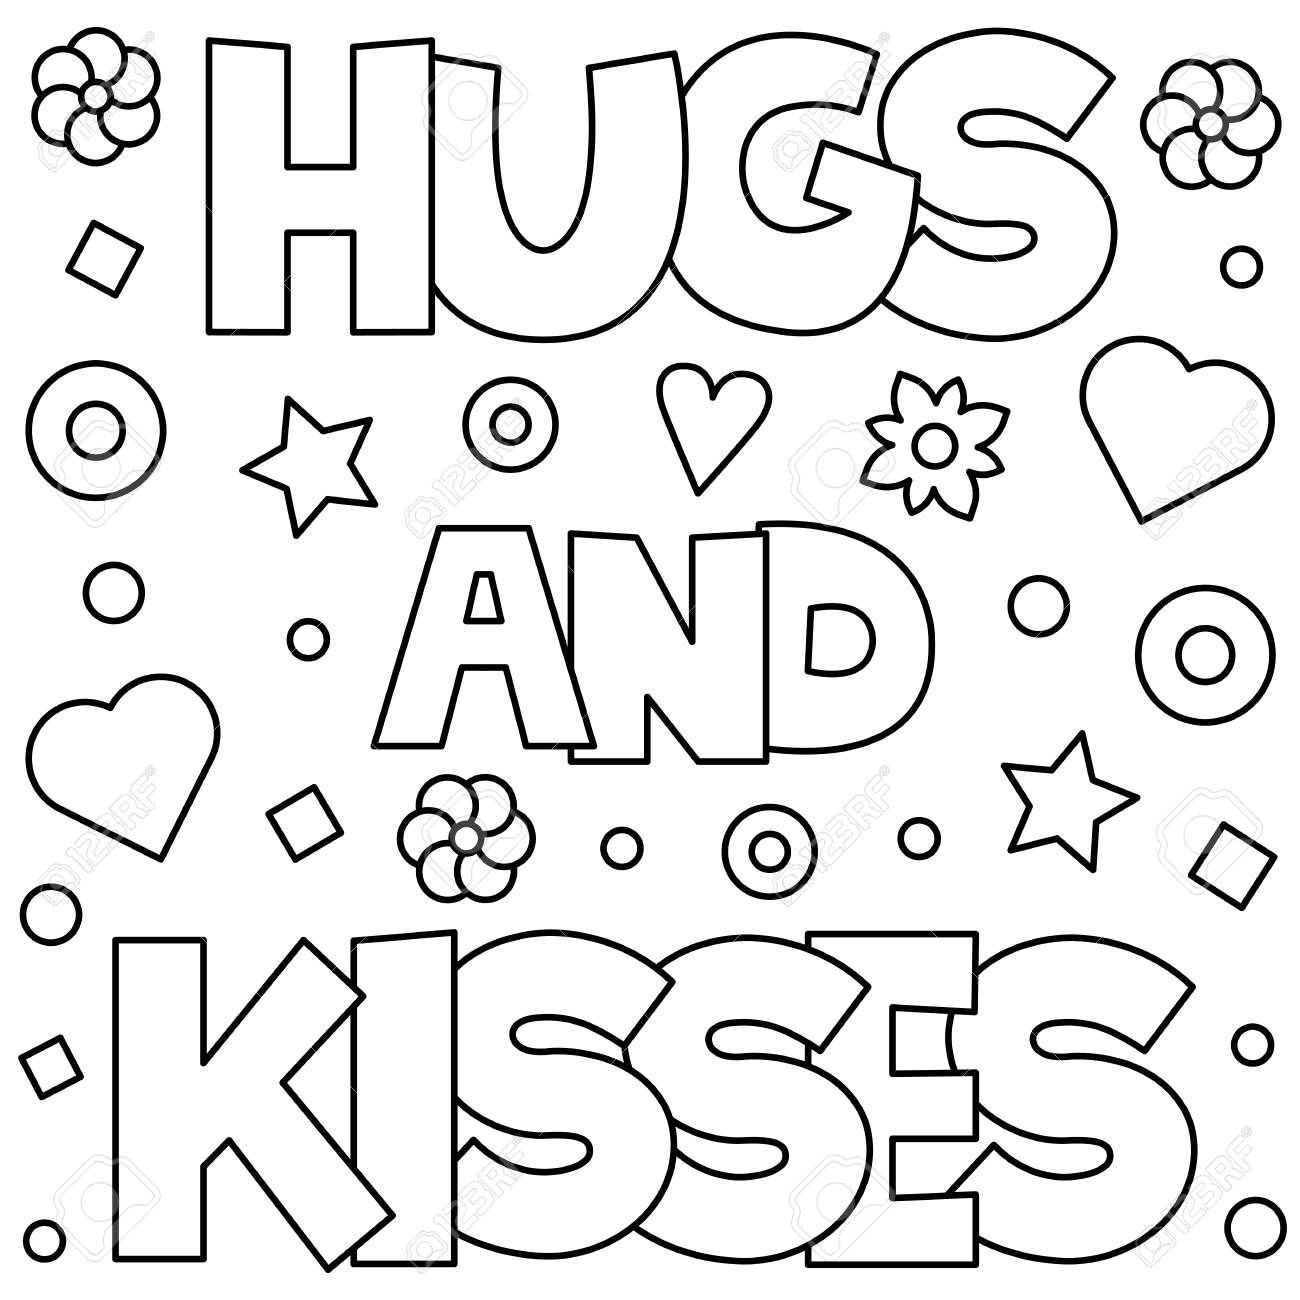 Hugs And Kisses Coloring Page Vector Illustration